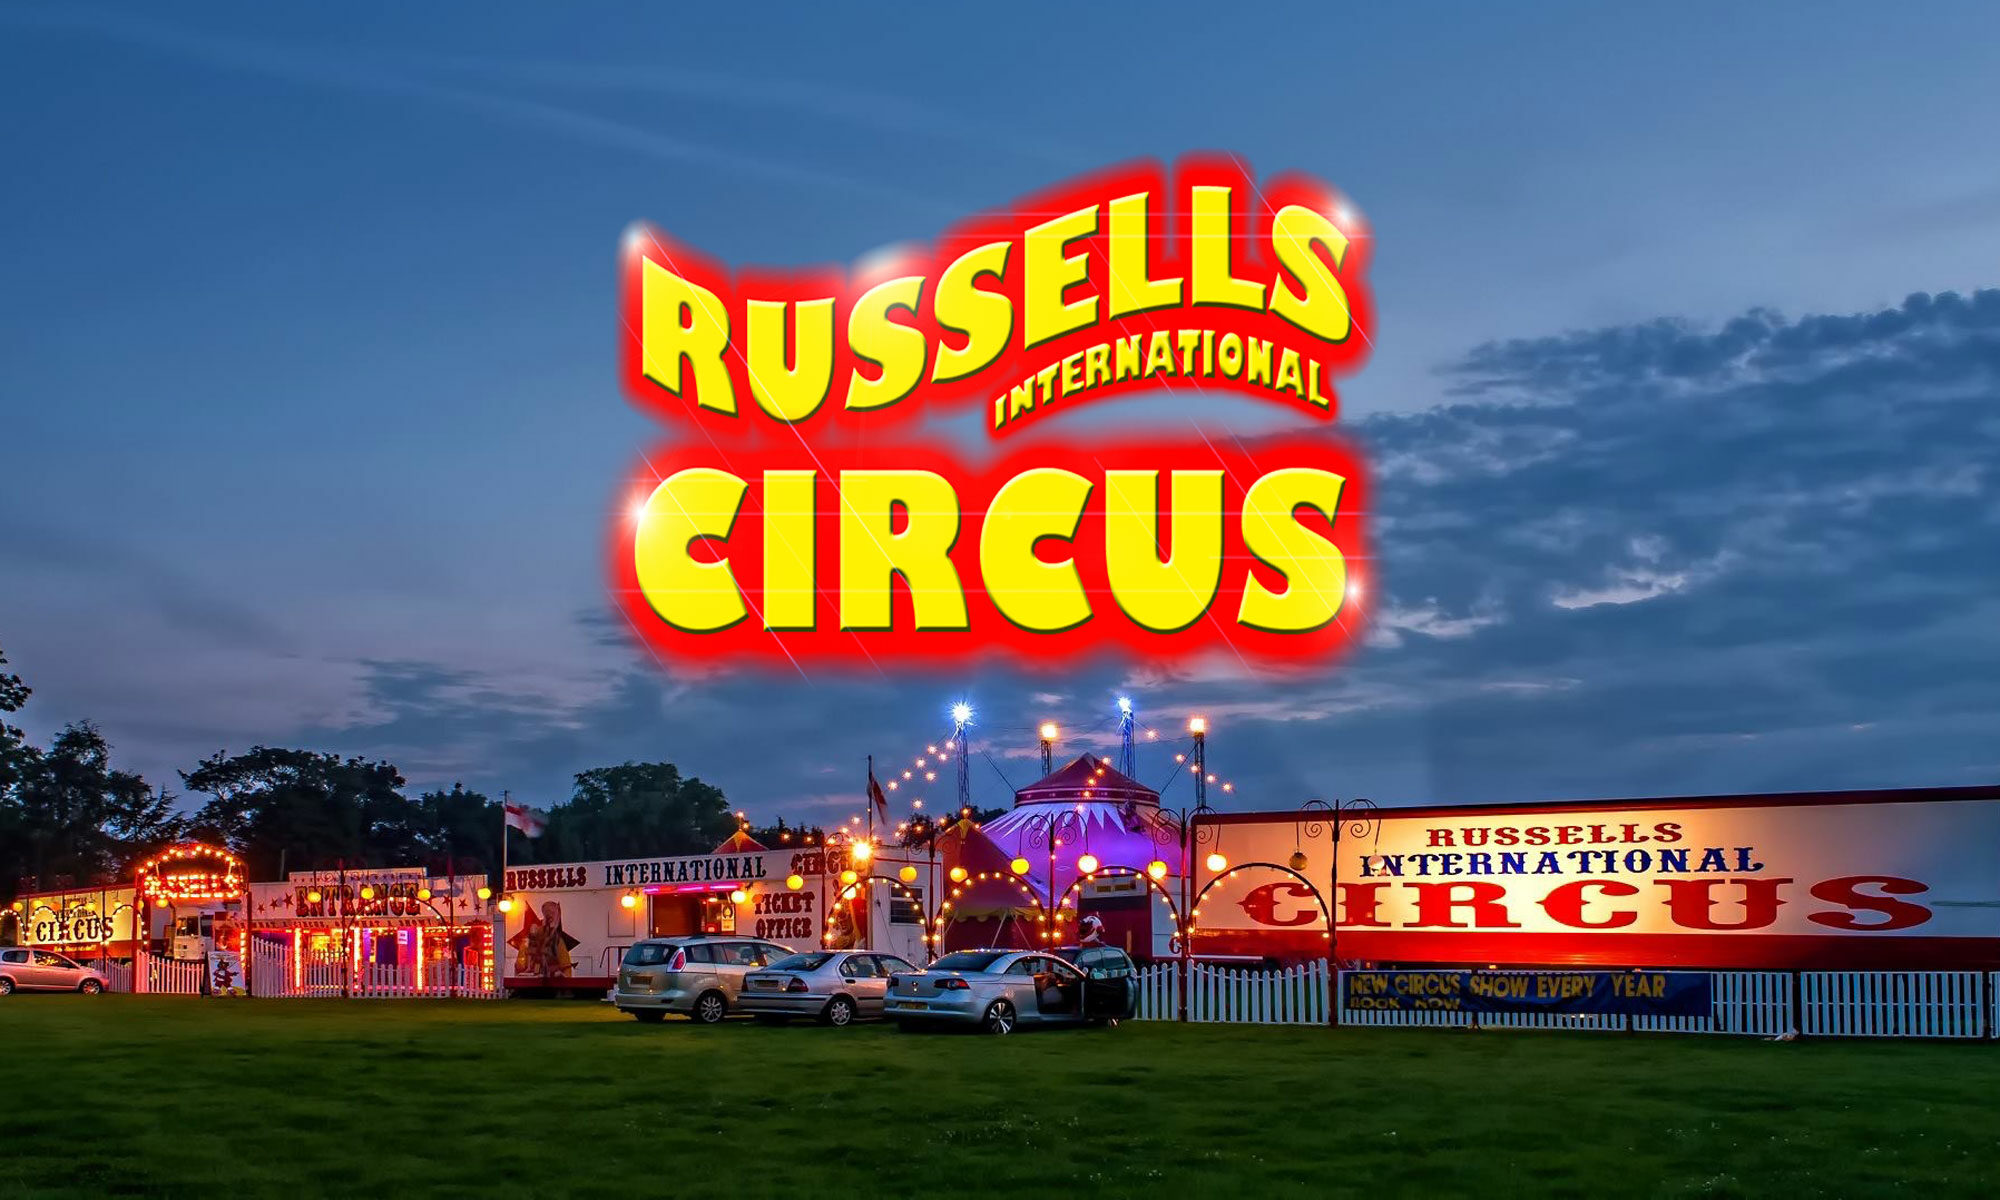 Russell's International Circus